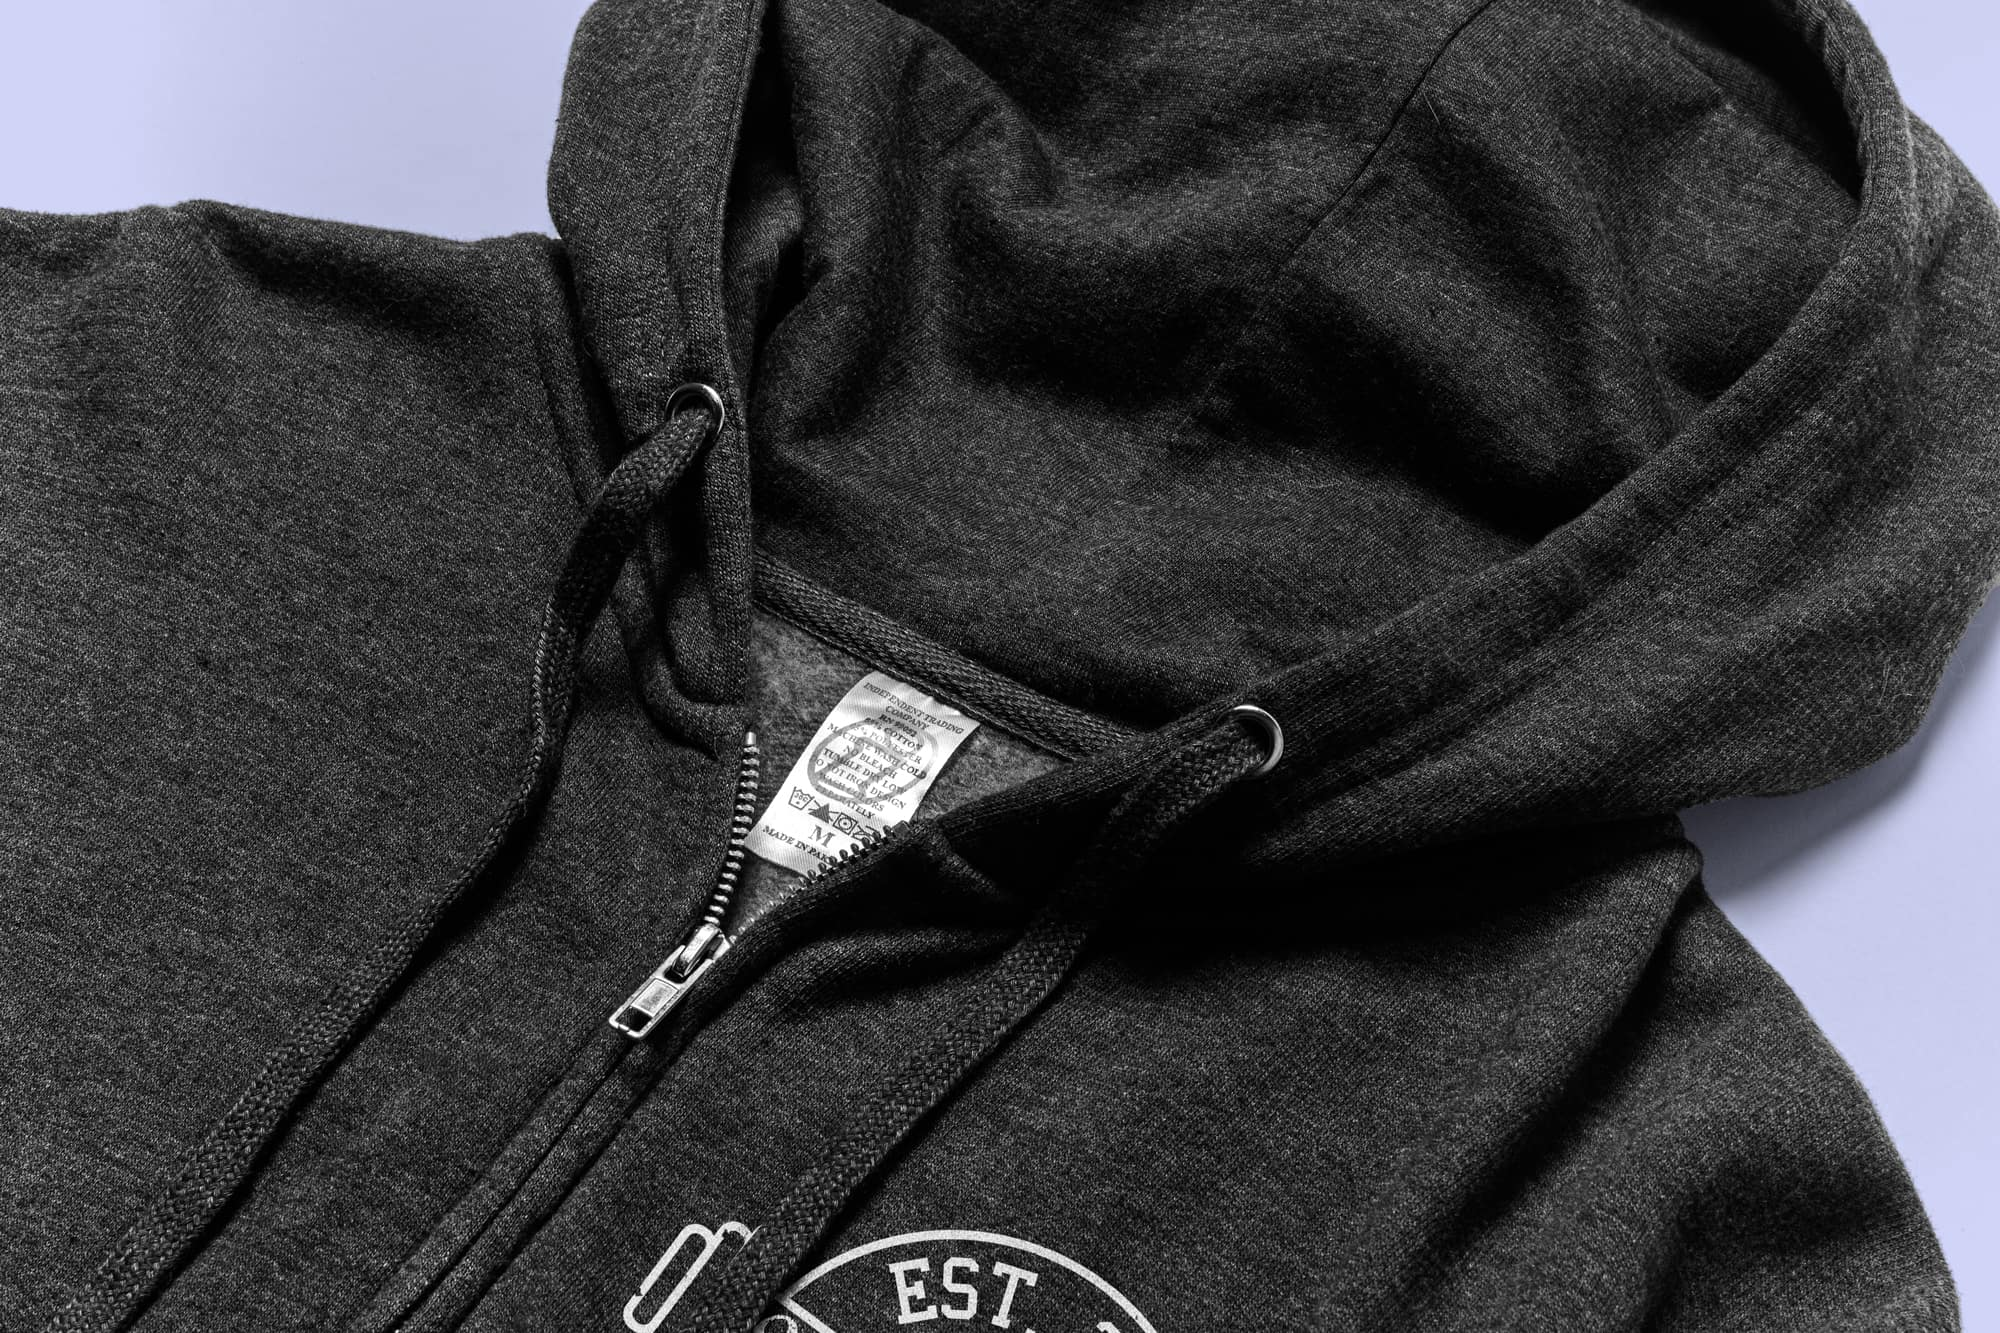 Detail showing the hood and zipper of the Independent Trading Zip Up Hoodie.